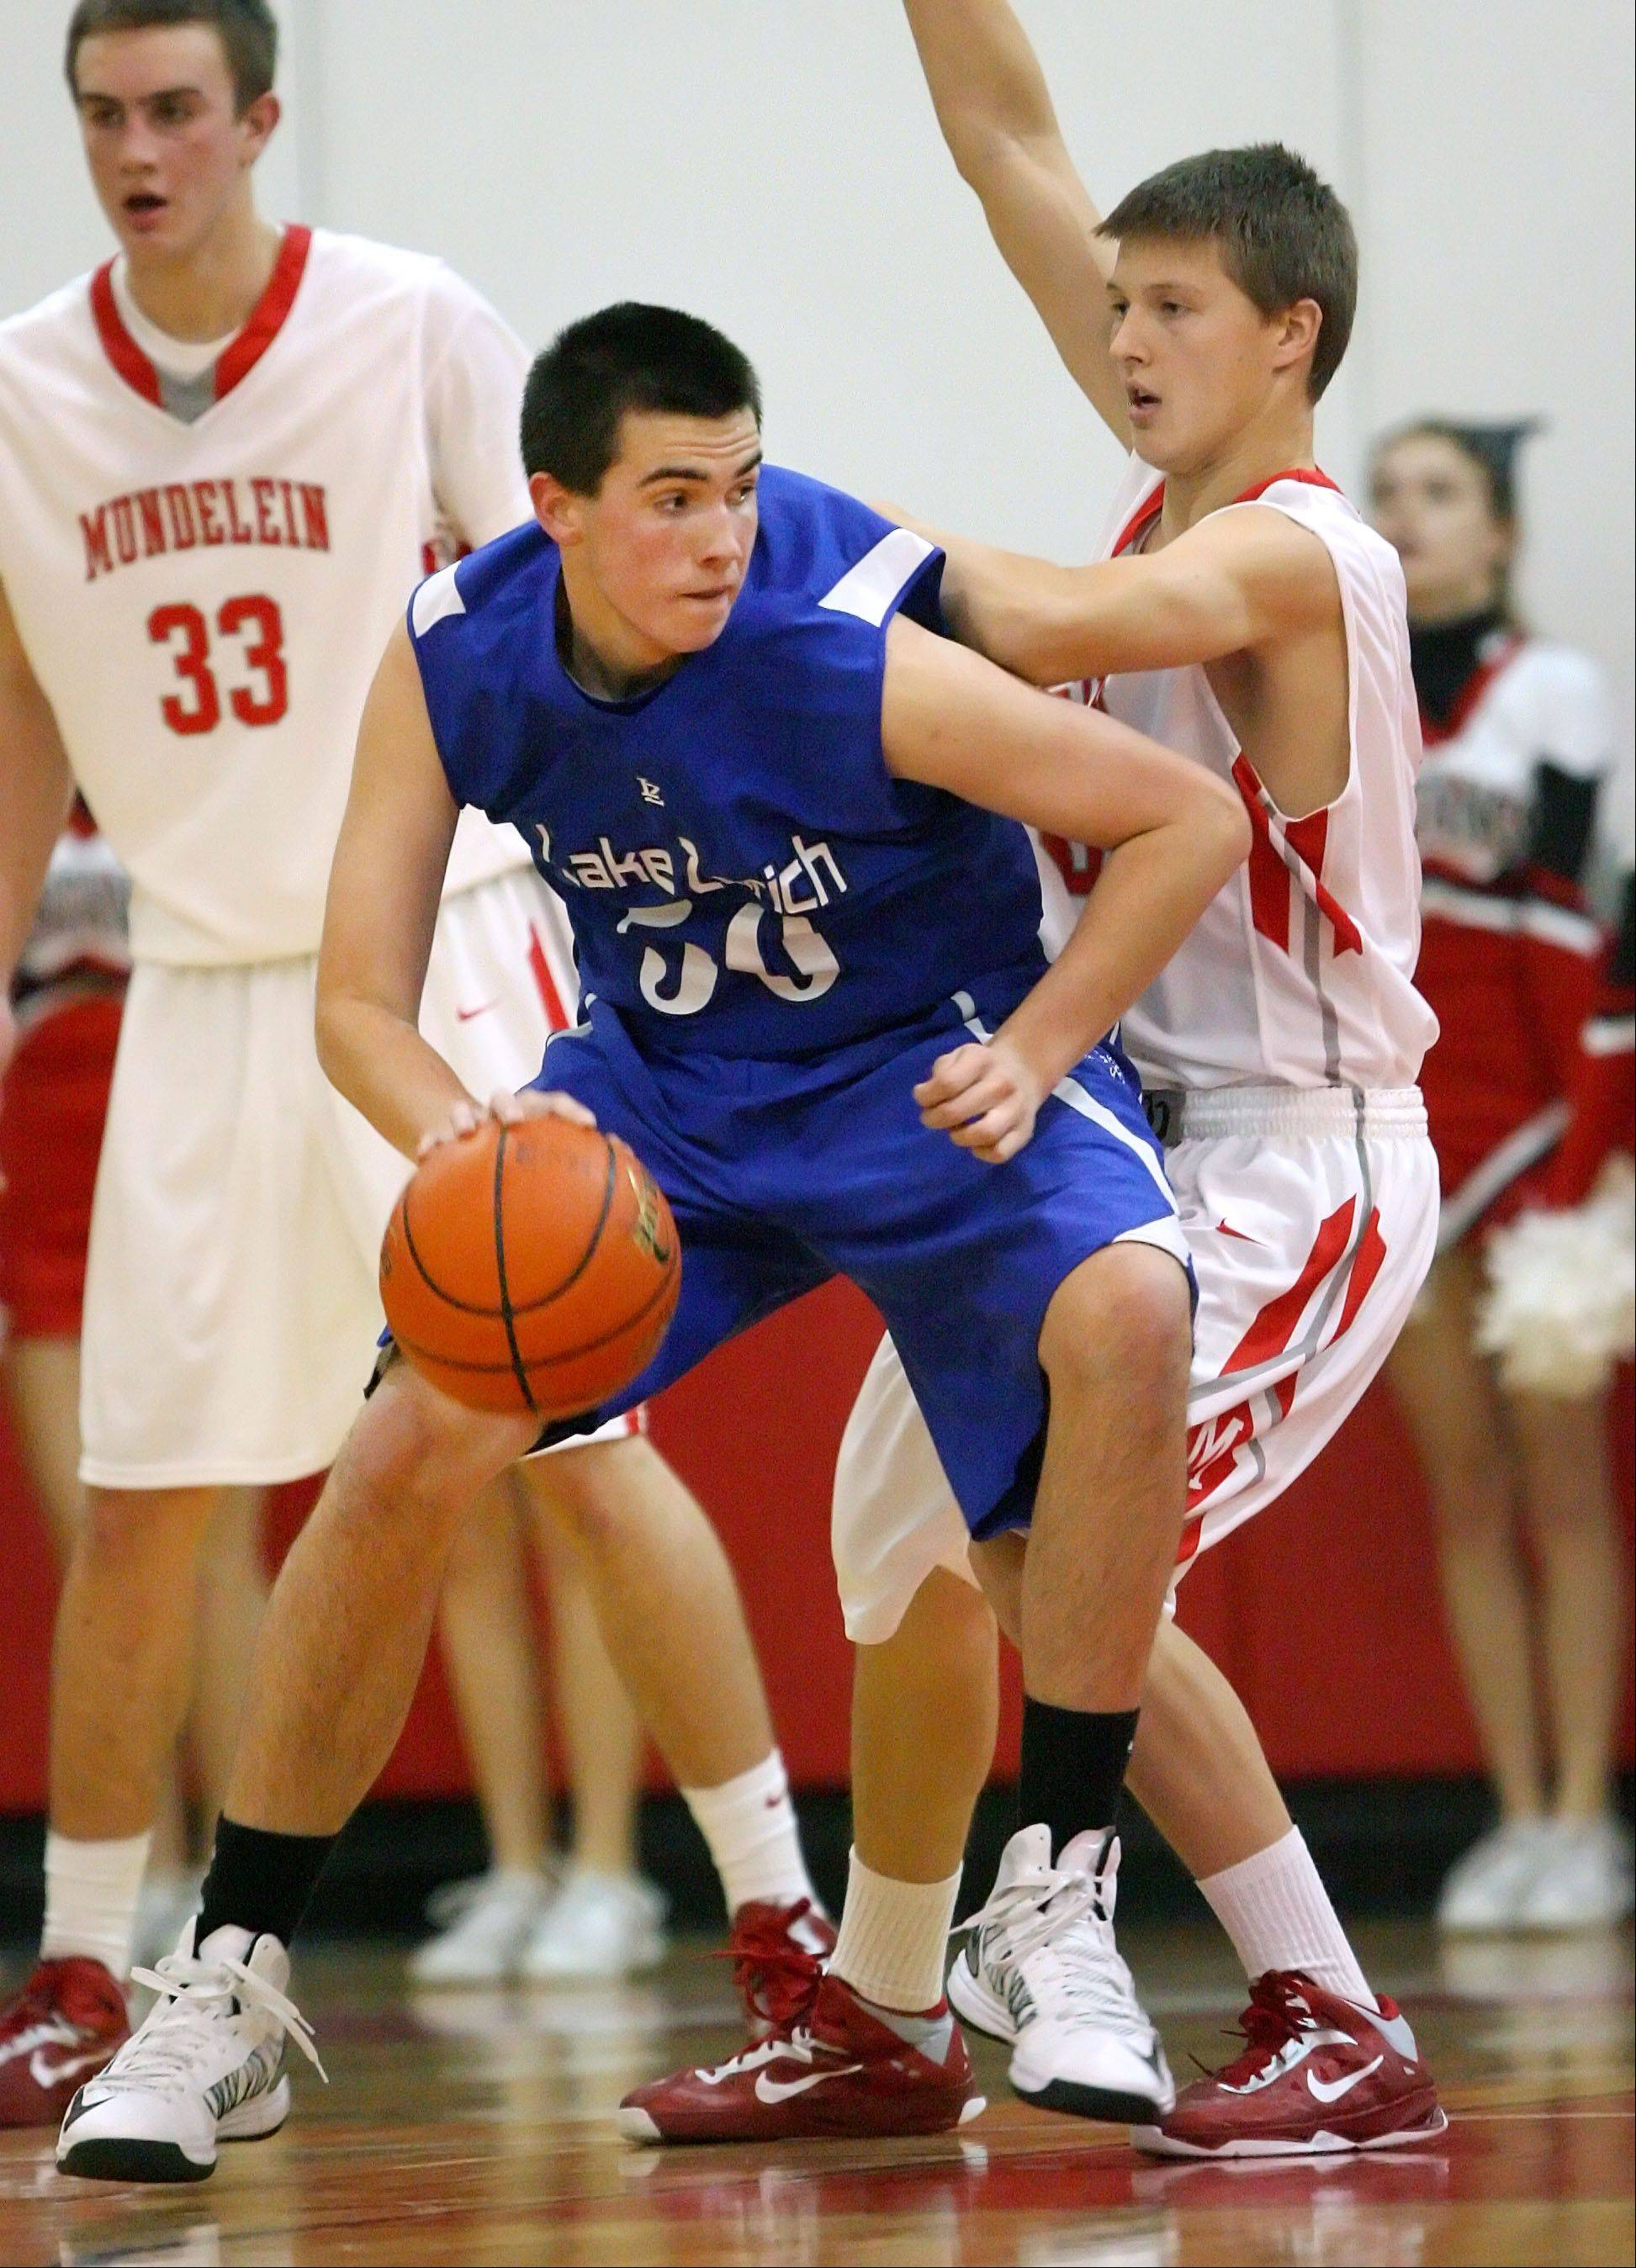 Lake Zurich's Will McLaughry, left, backs in on Mundelein's TJ Michalski.